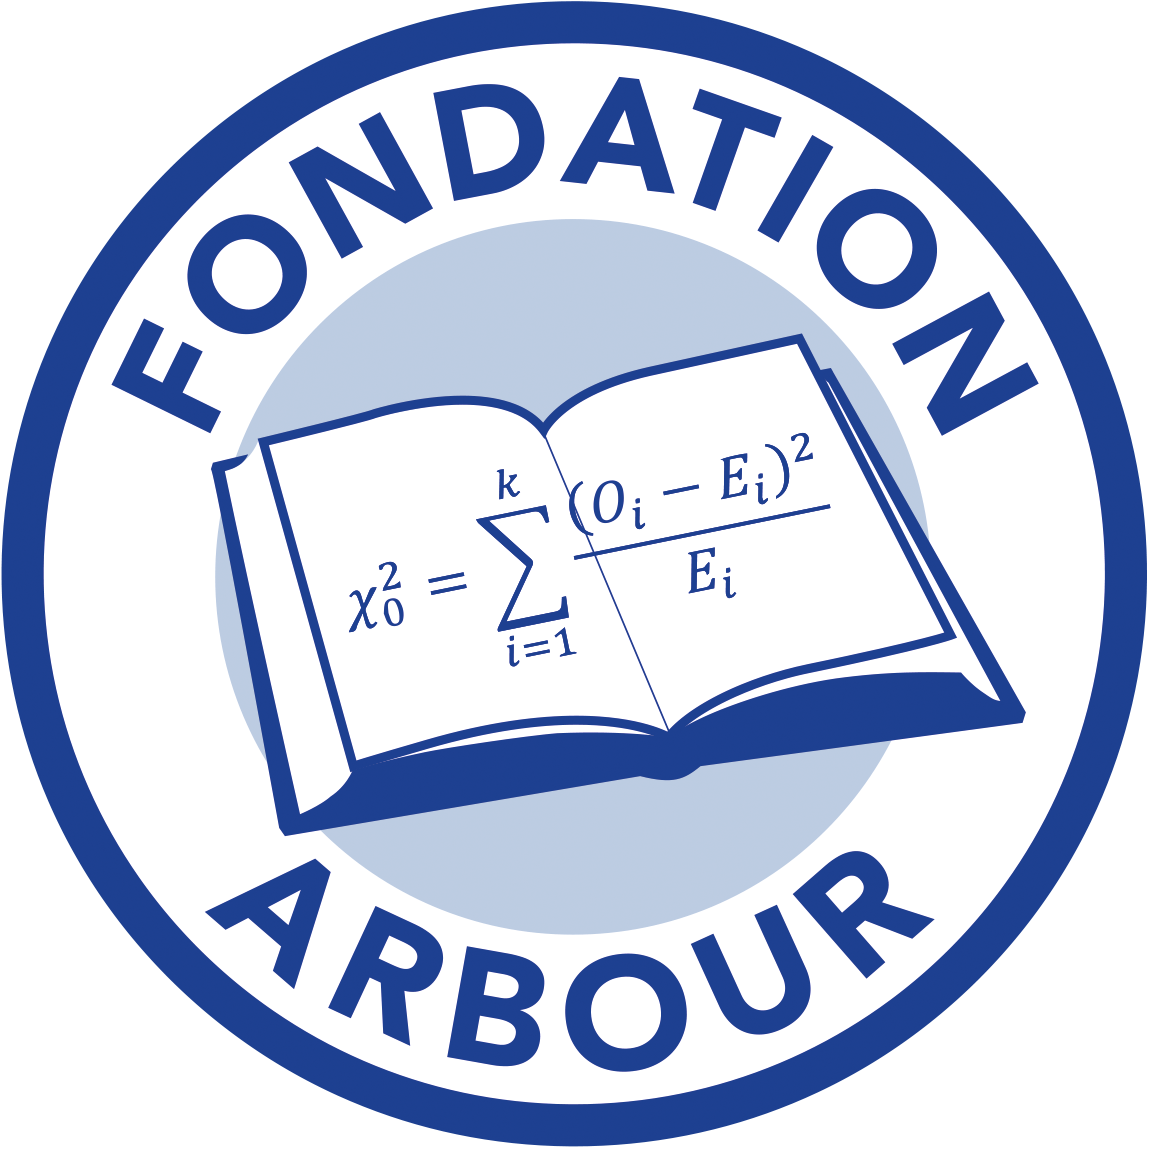 Fondation Arbour